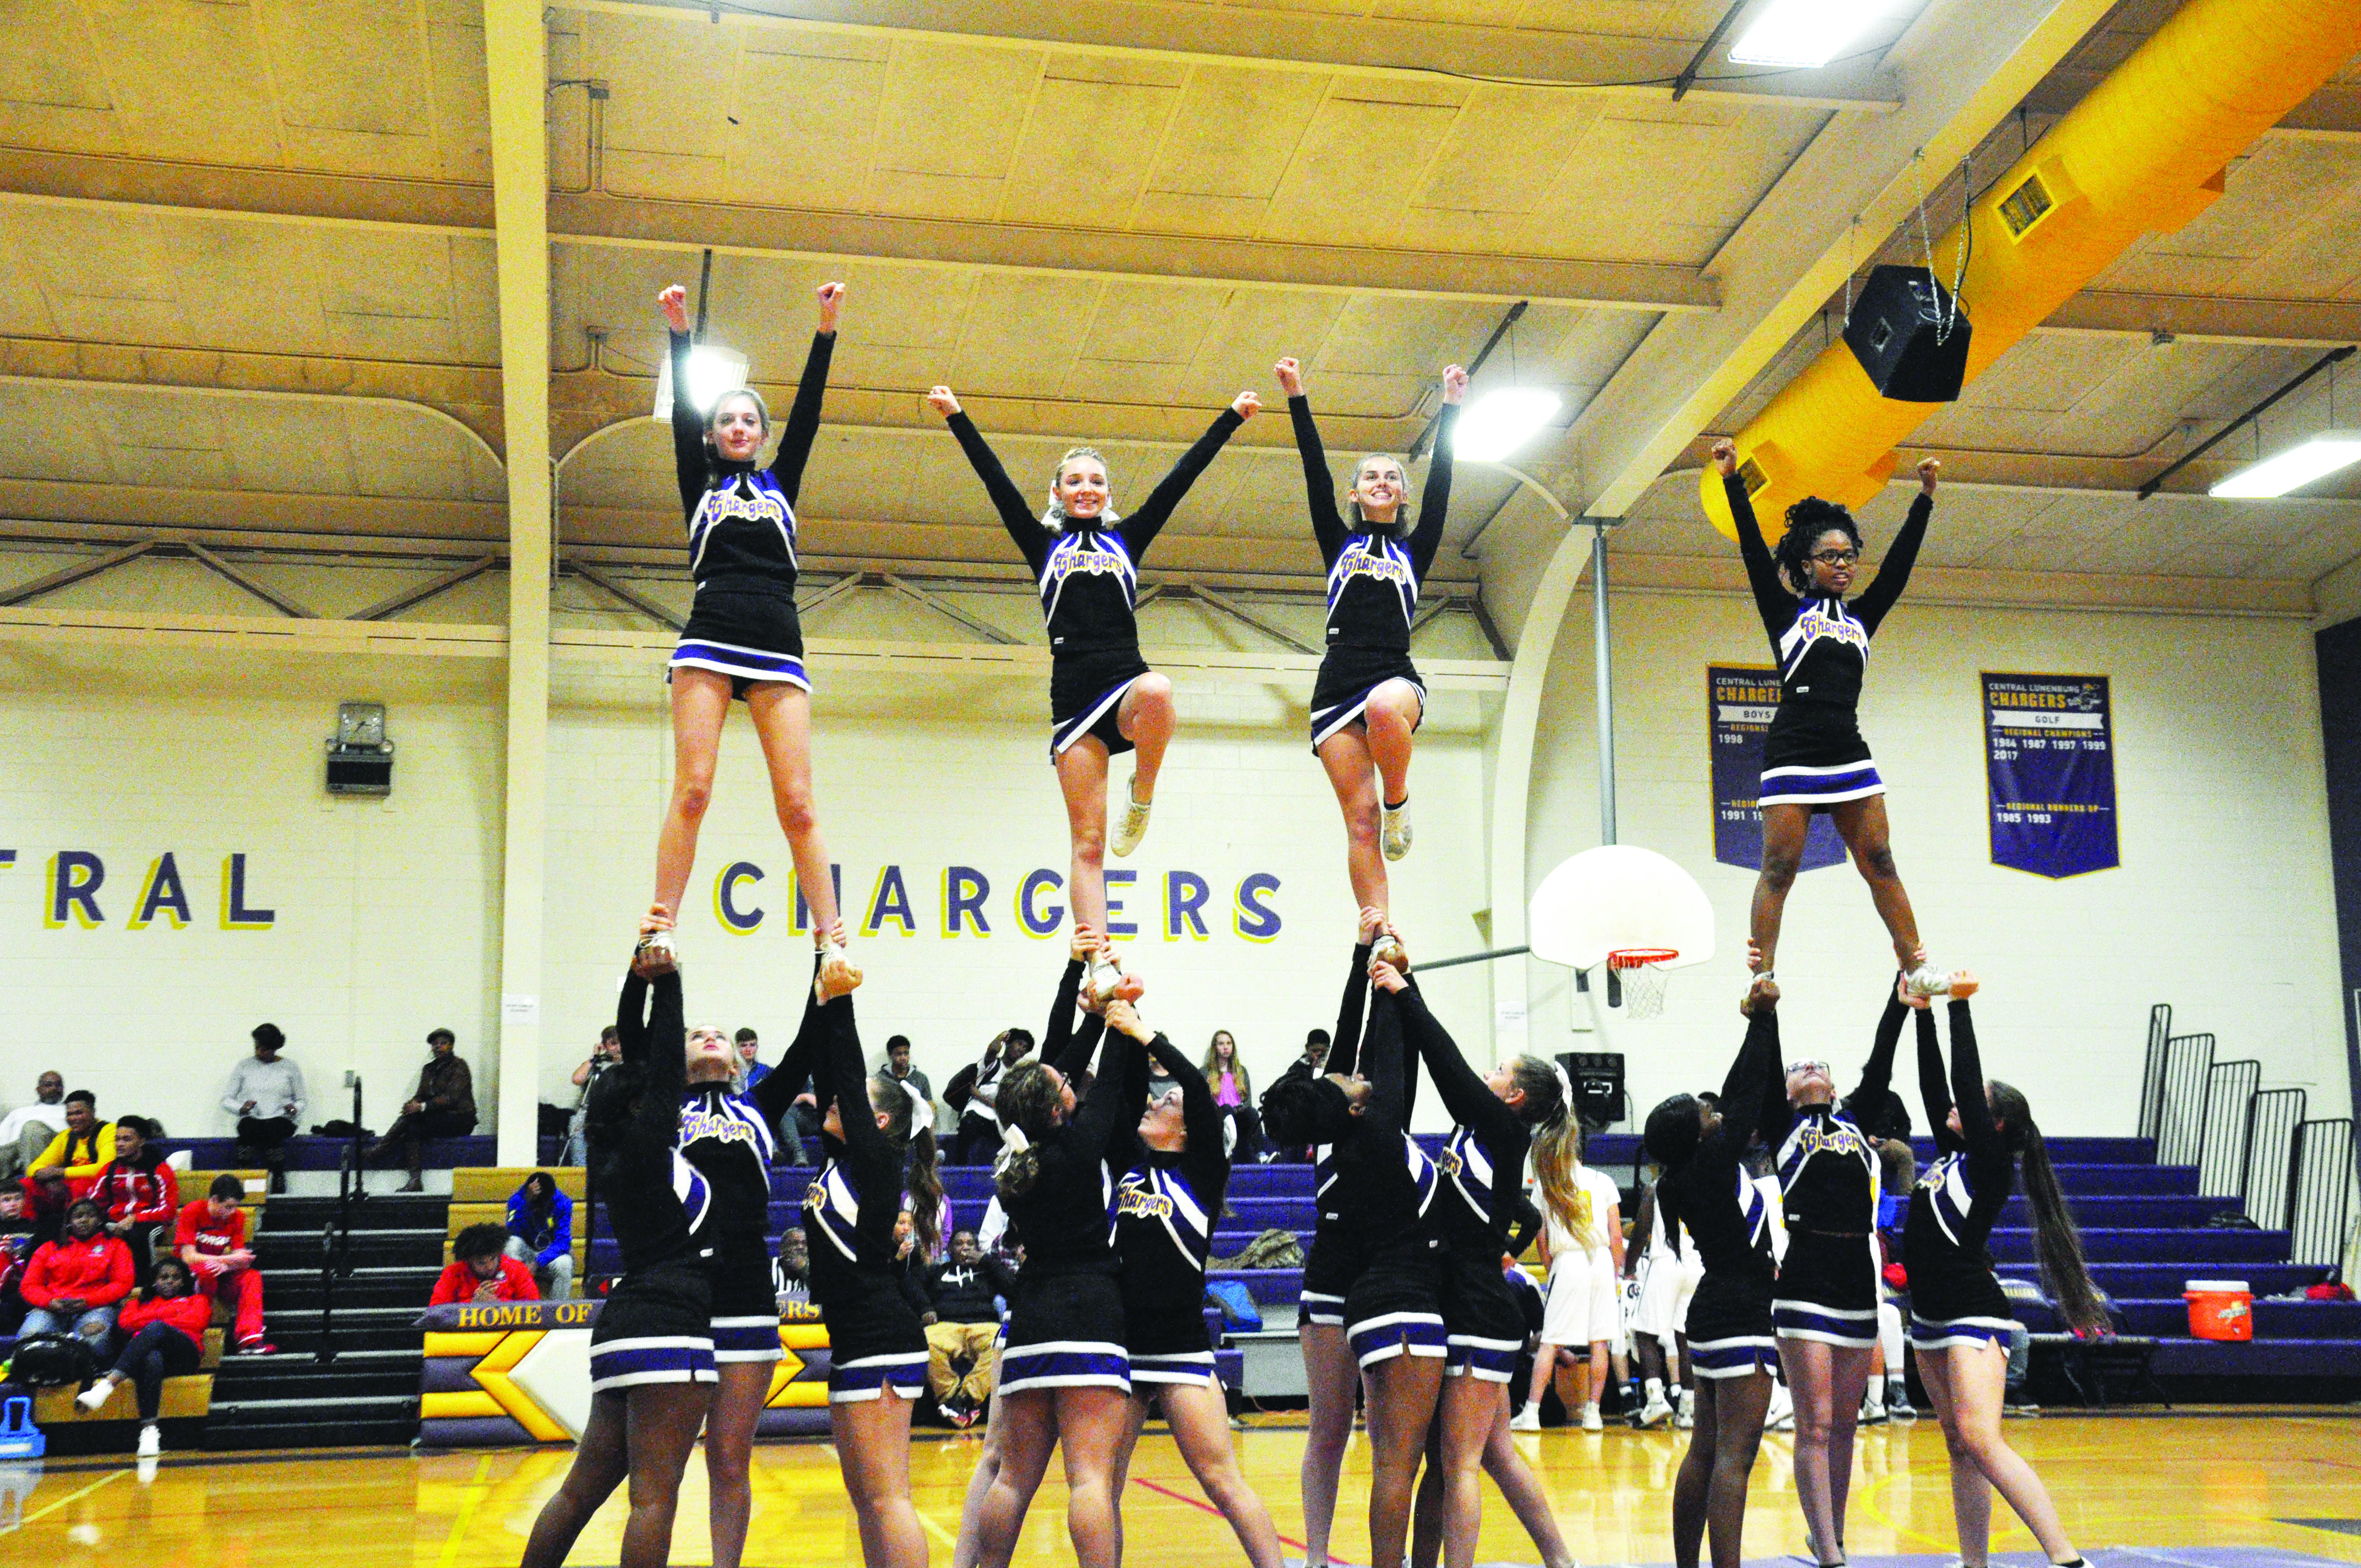 Chargers Take on top--Cheer